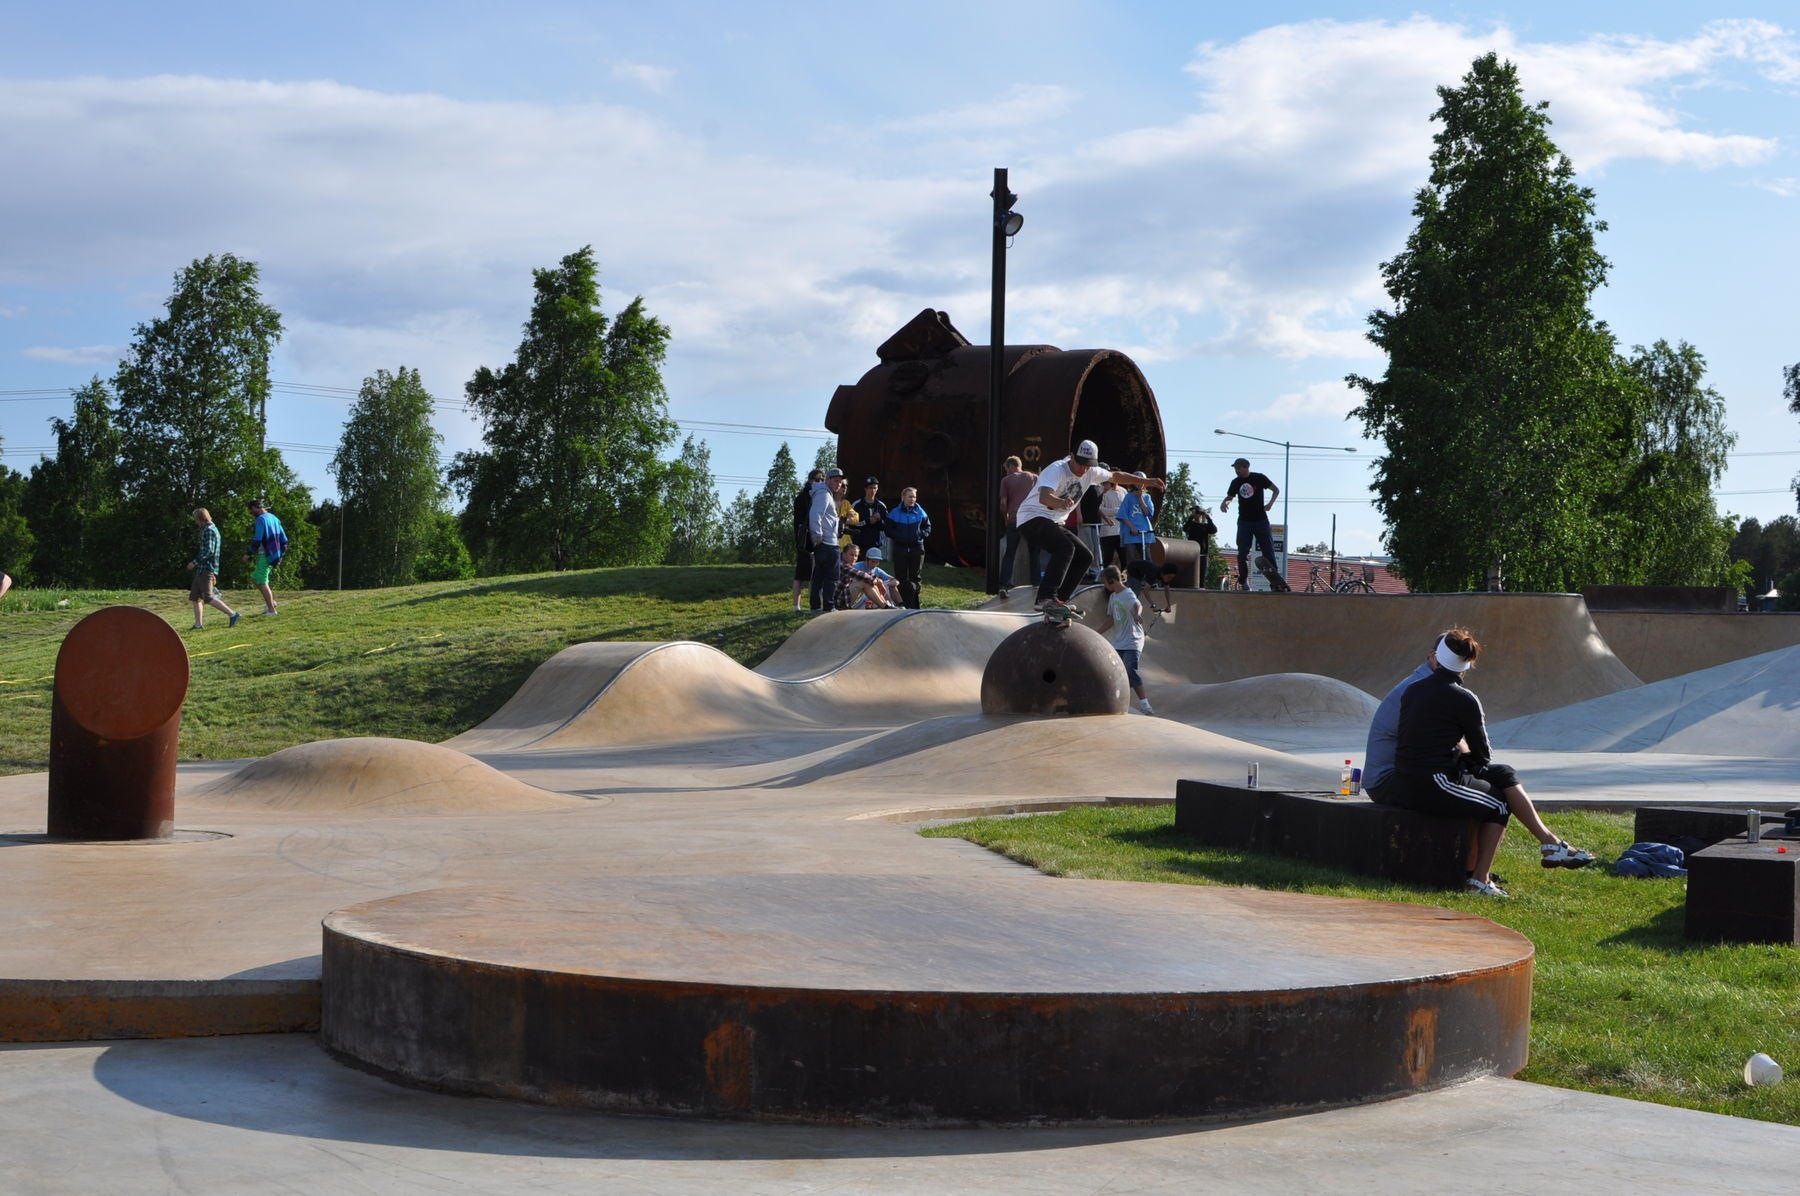 men skateboarding in skatepark